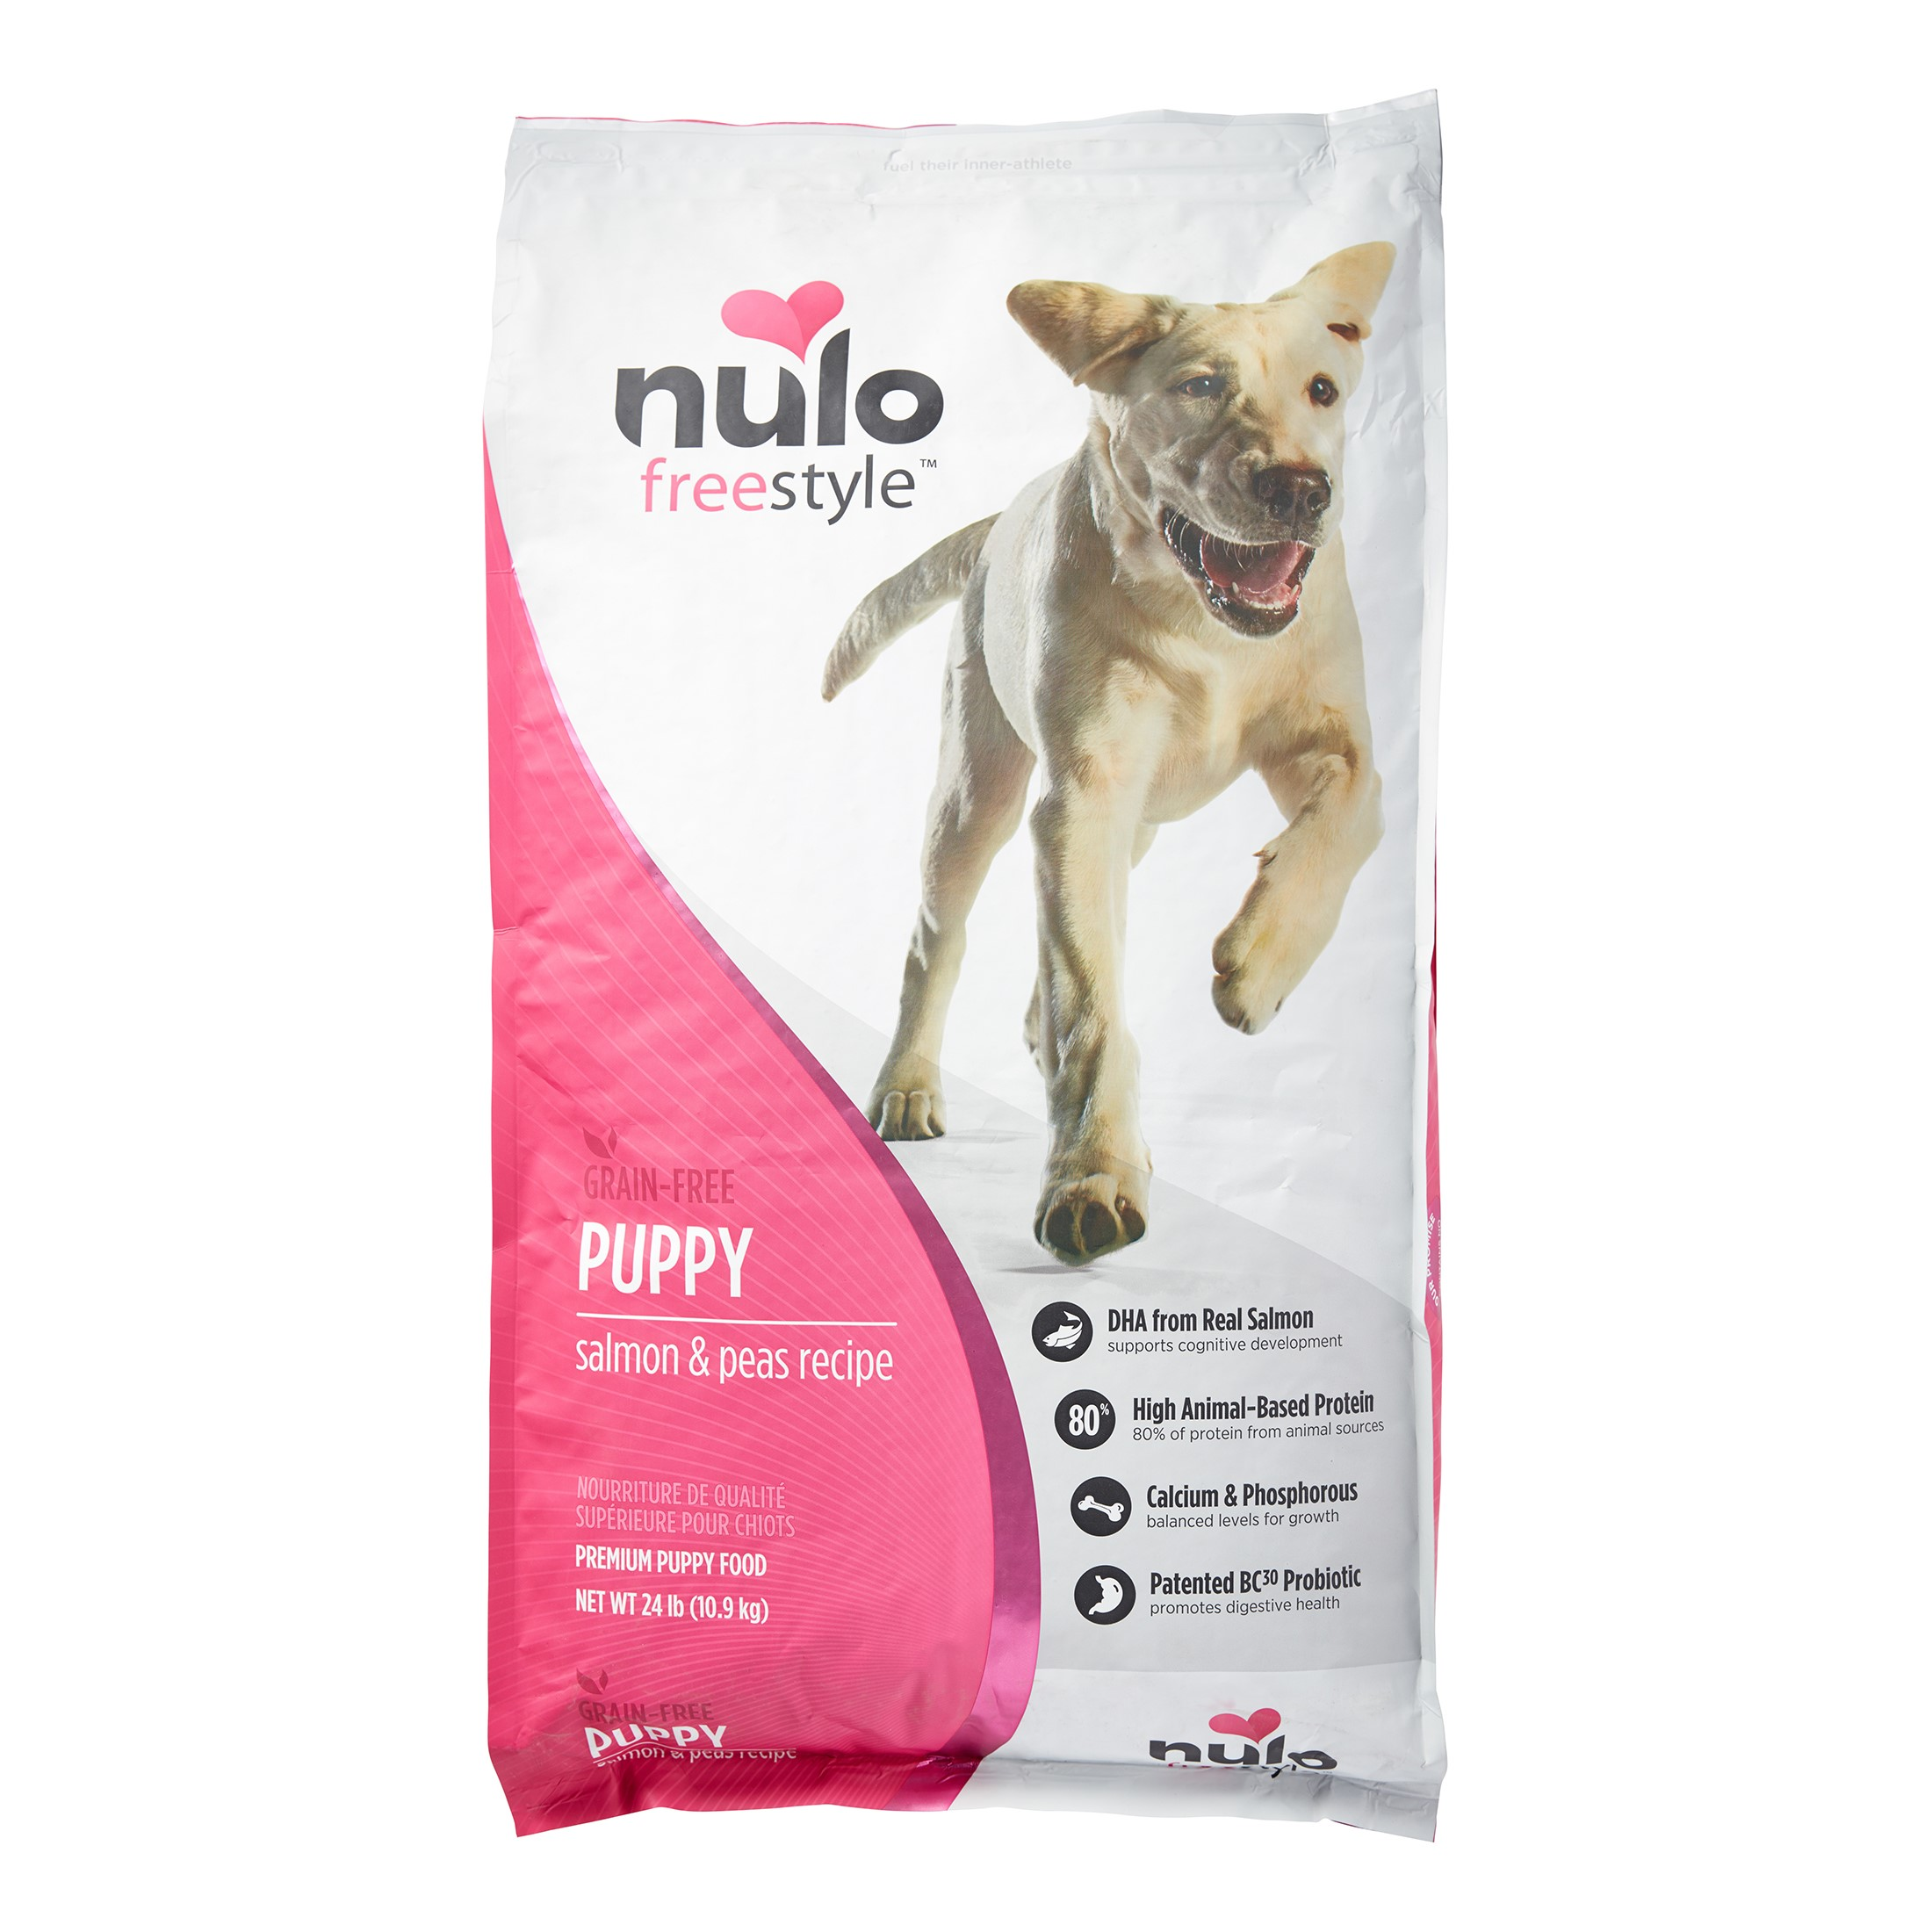 Nulo Freestyle Grain-Free Salmon & Peas All Breeds Puppy Dry Dog Food, 24 Lb